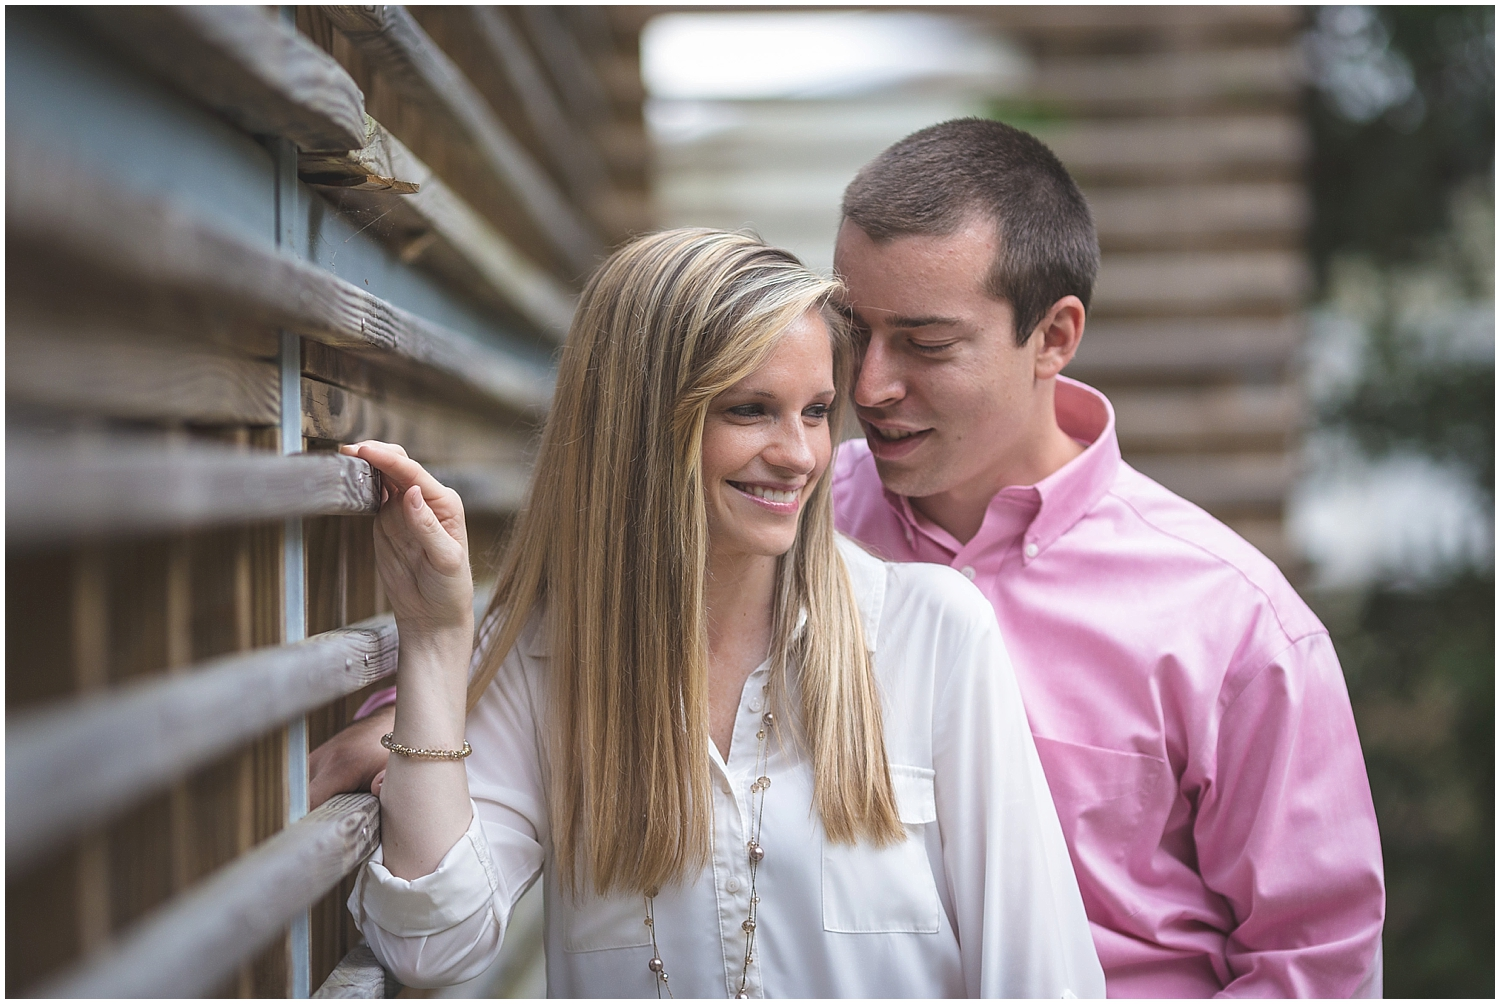 Coker Arboretum UNC Campus Chapel Hill North Carolina Engagement Photographer-0019.jpg